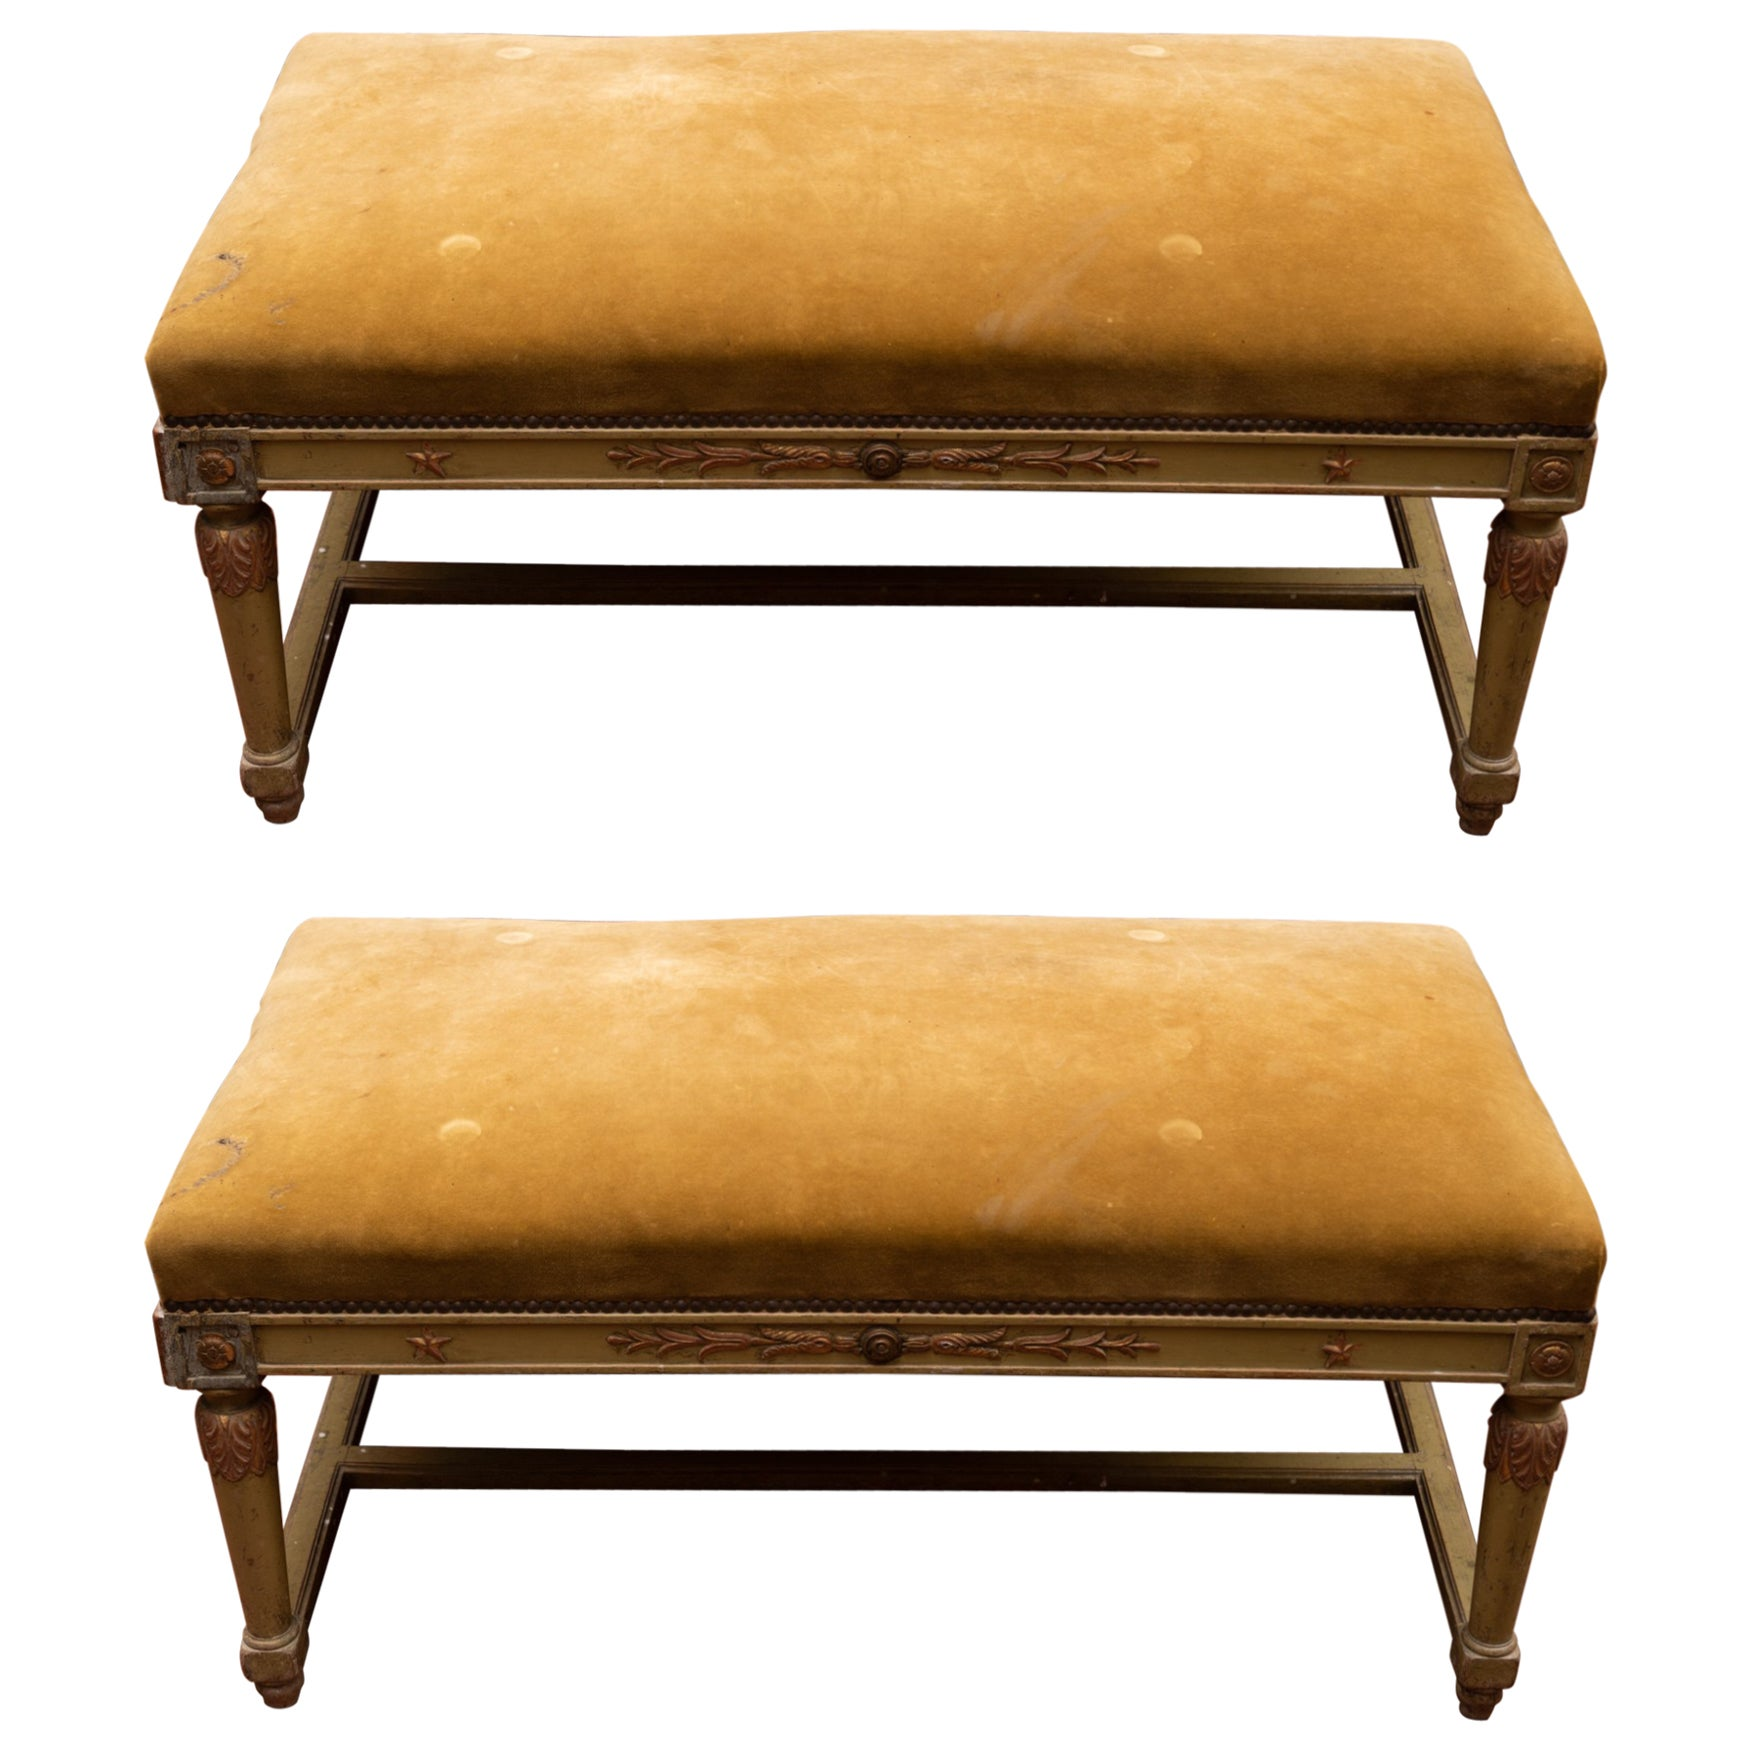 Pair of 19th Century French Painted Benches